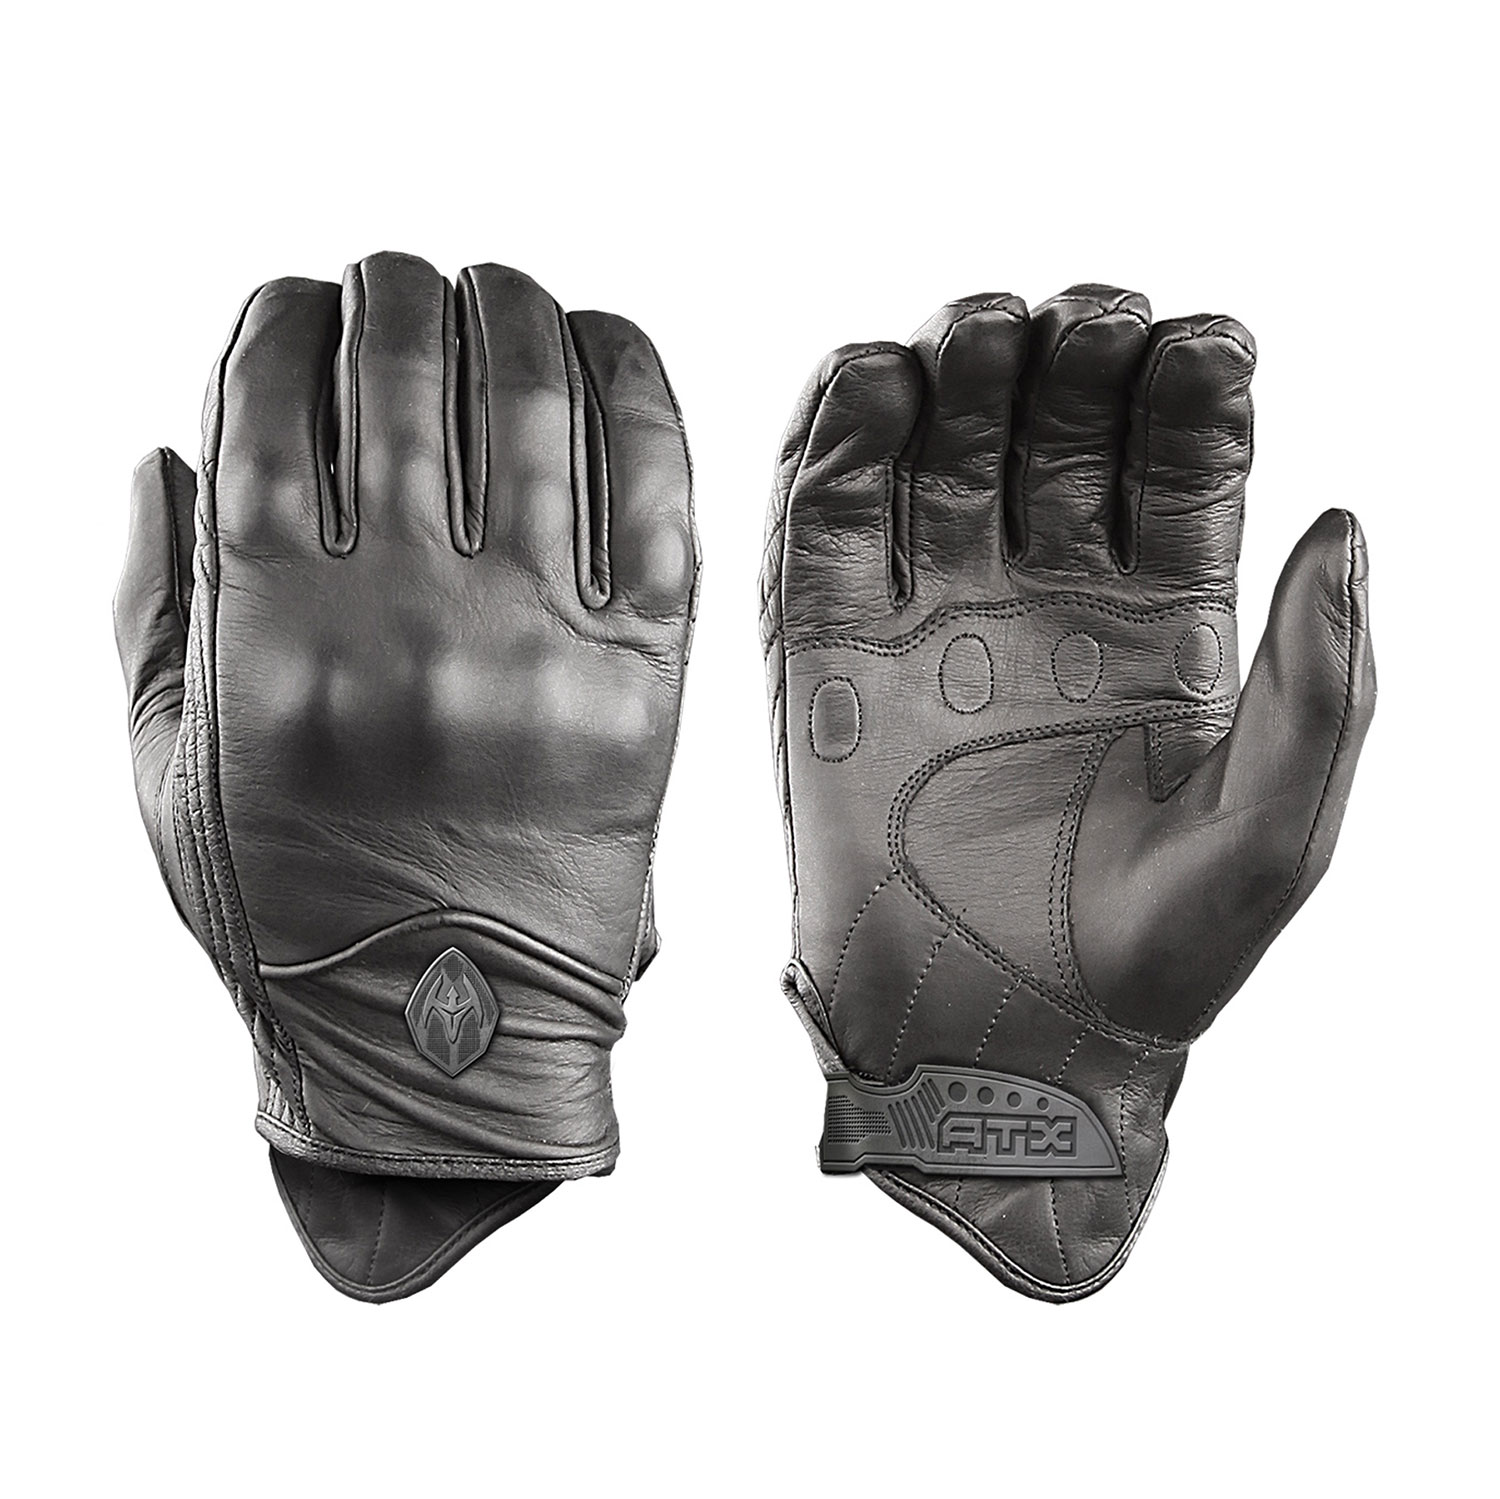 Damascus All-Leather Gloves with Knuckle Armor